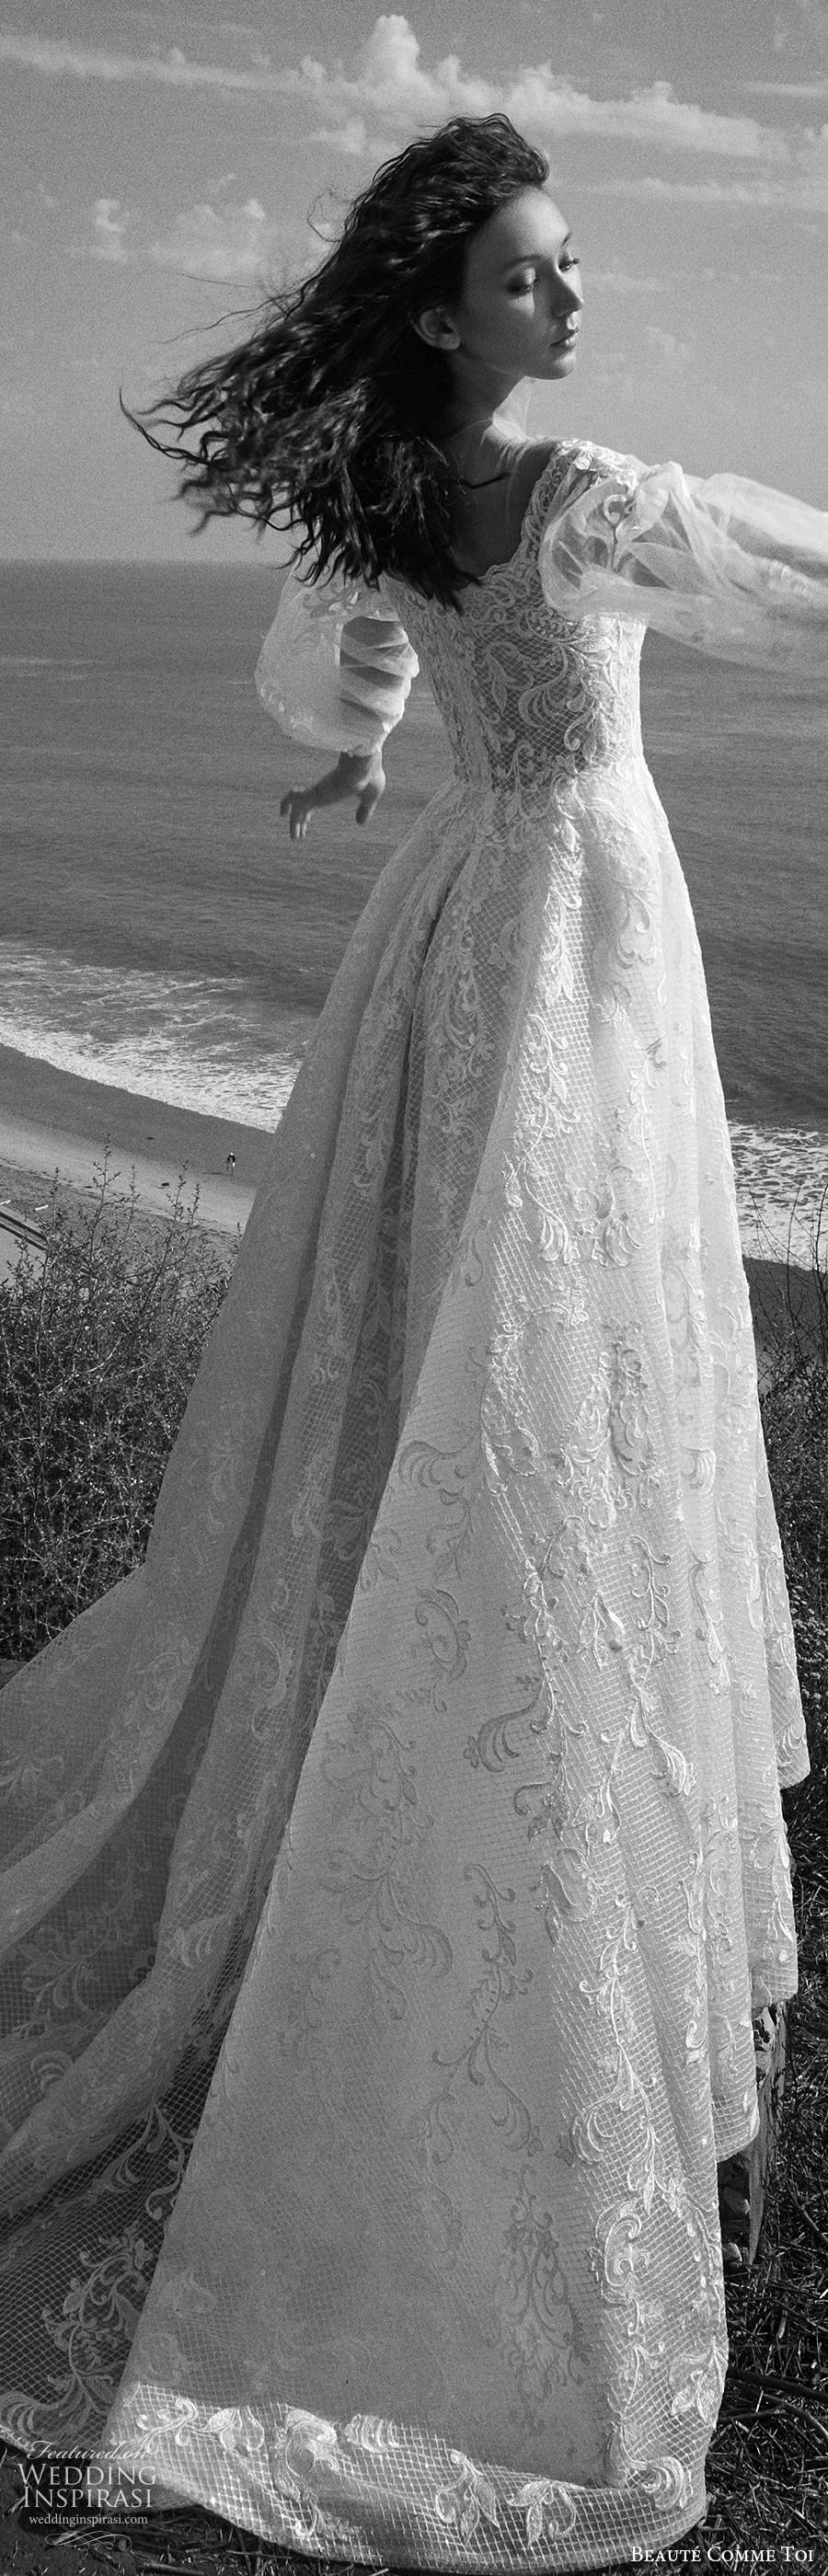 beaute comme toi f2020 bridal illusion long sleeves off shoulder sweetheart neckline fully embellished lace a line ball gown wedding dress chapel train (1) lbv